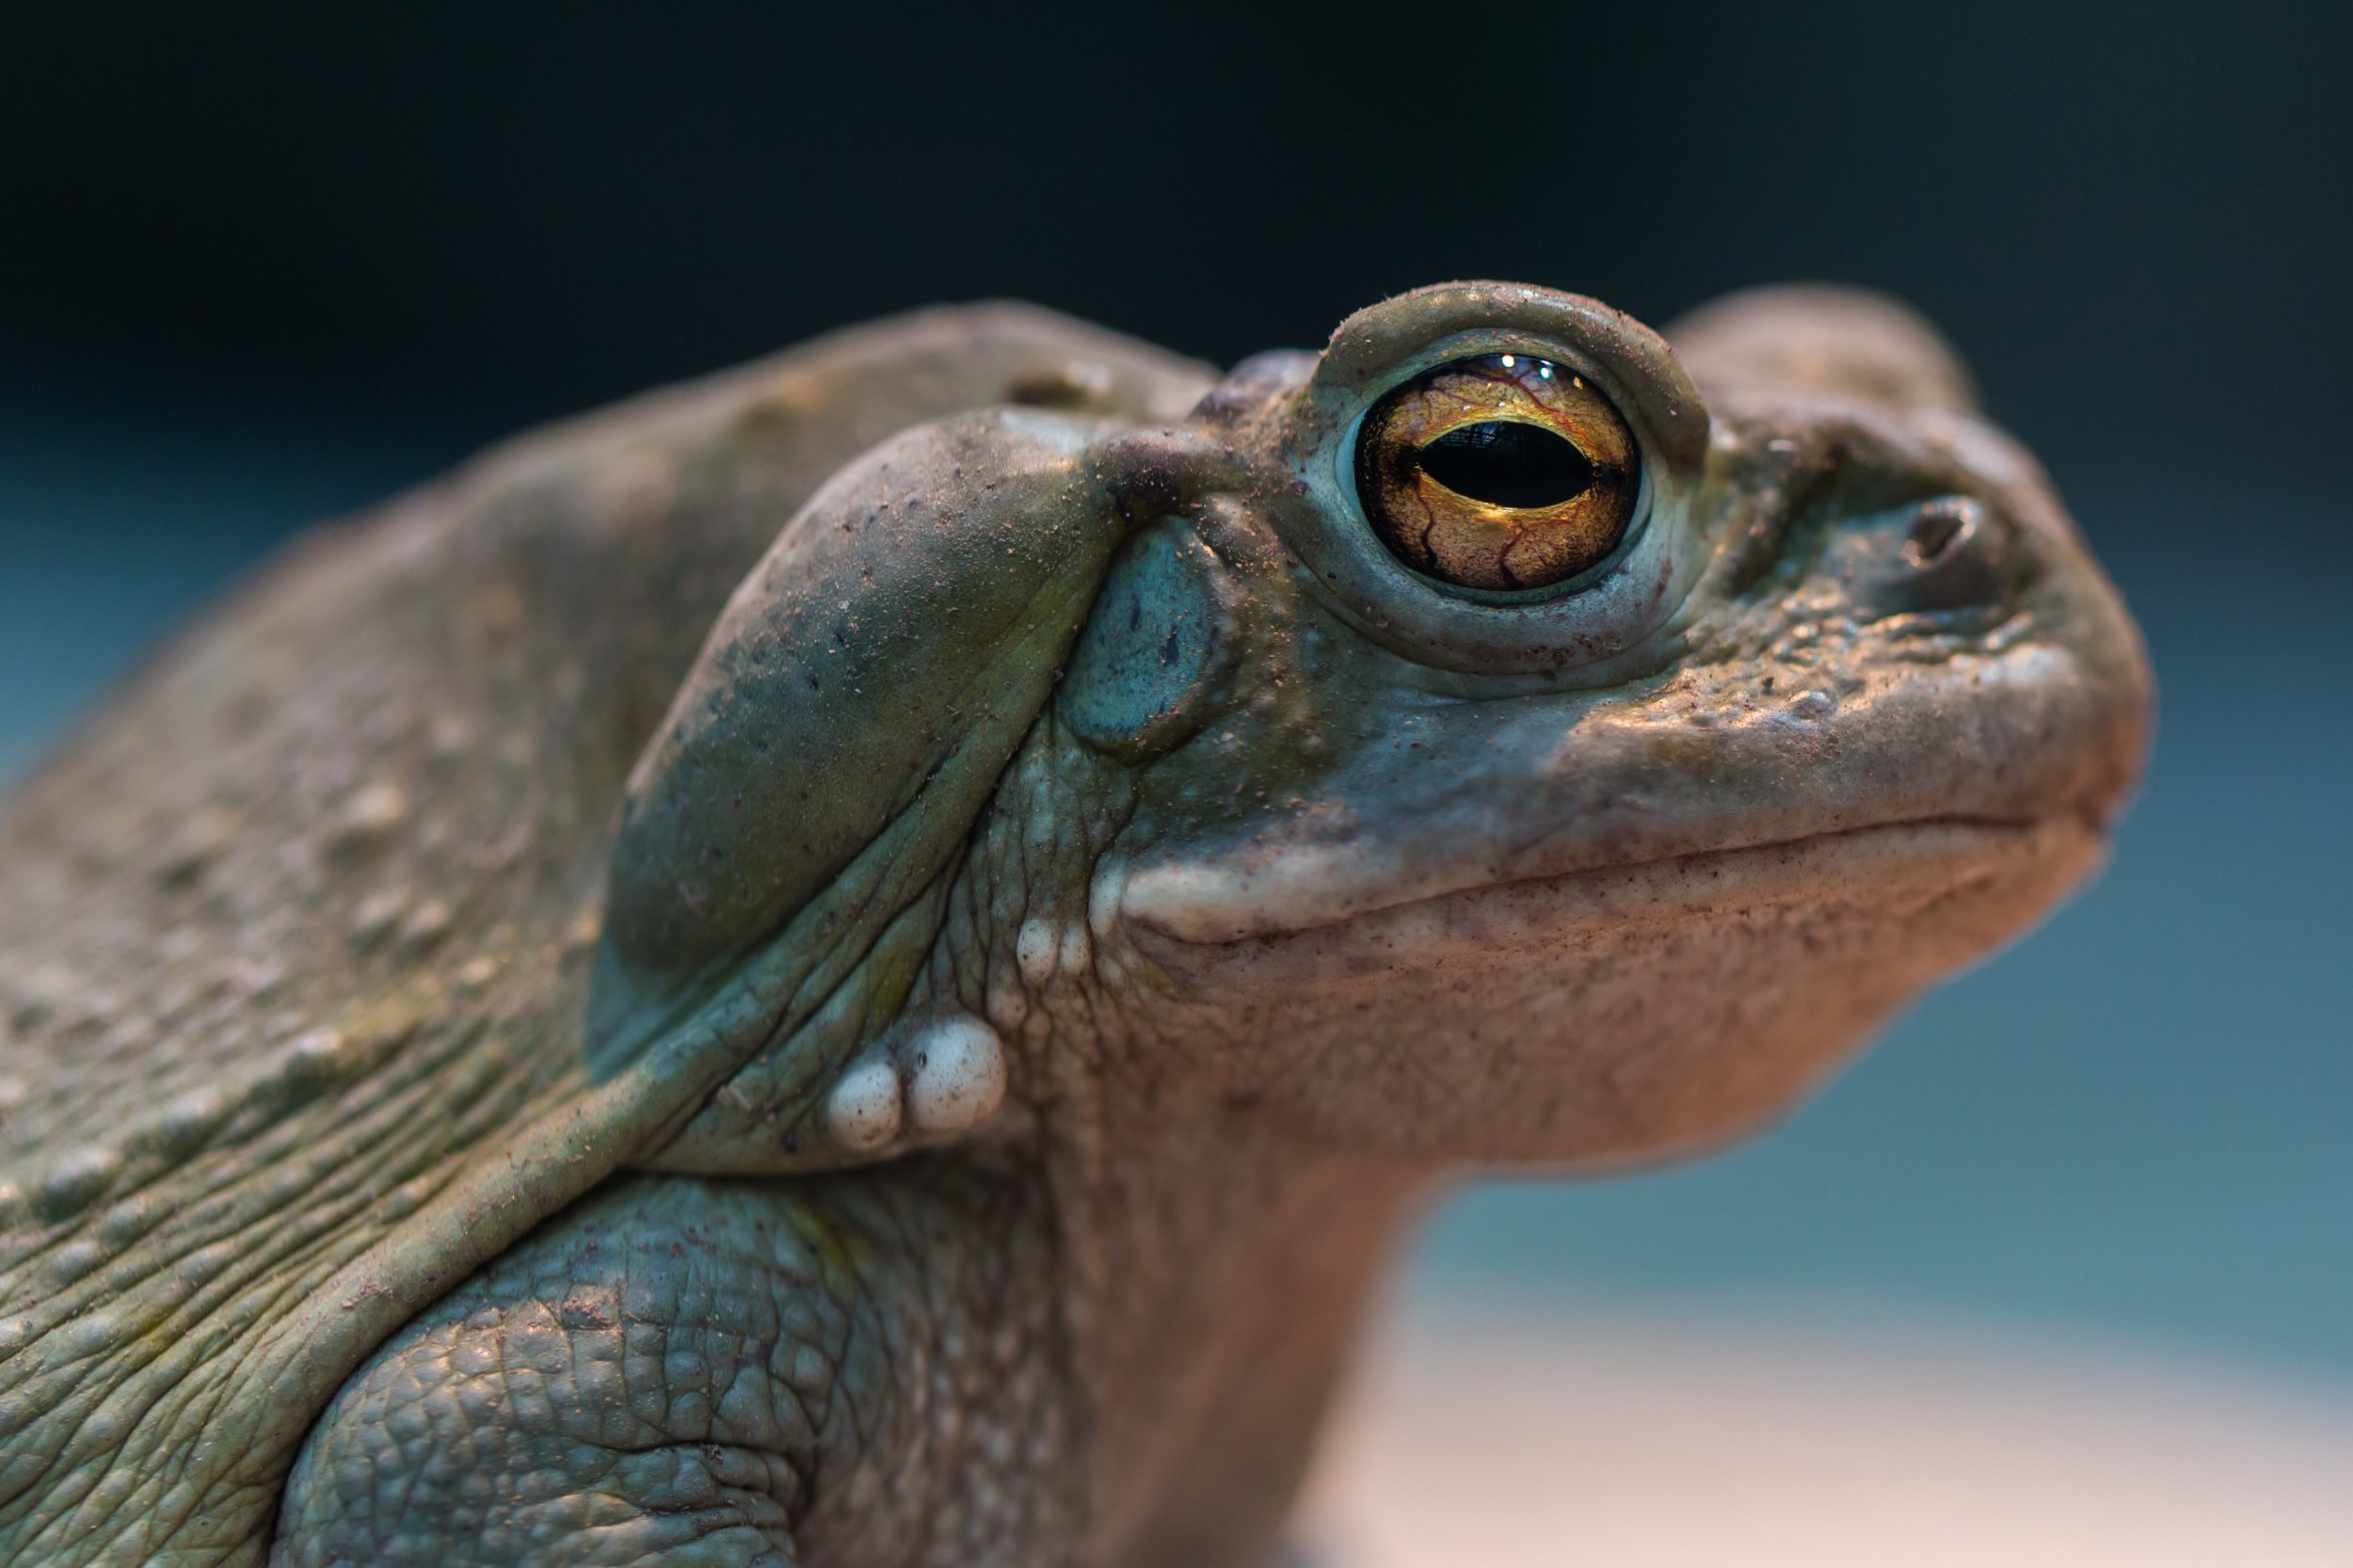 Portrait of colorado river toad; Shutterstock ID 436484824; Purchase Order: -